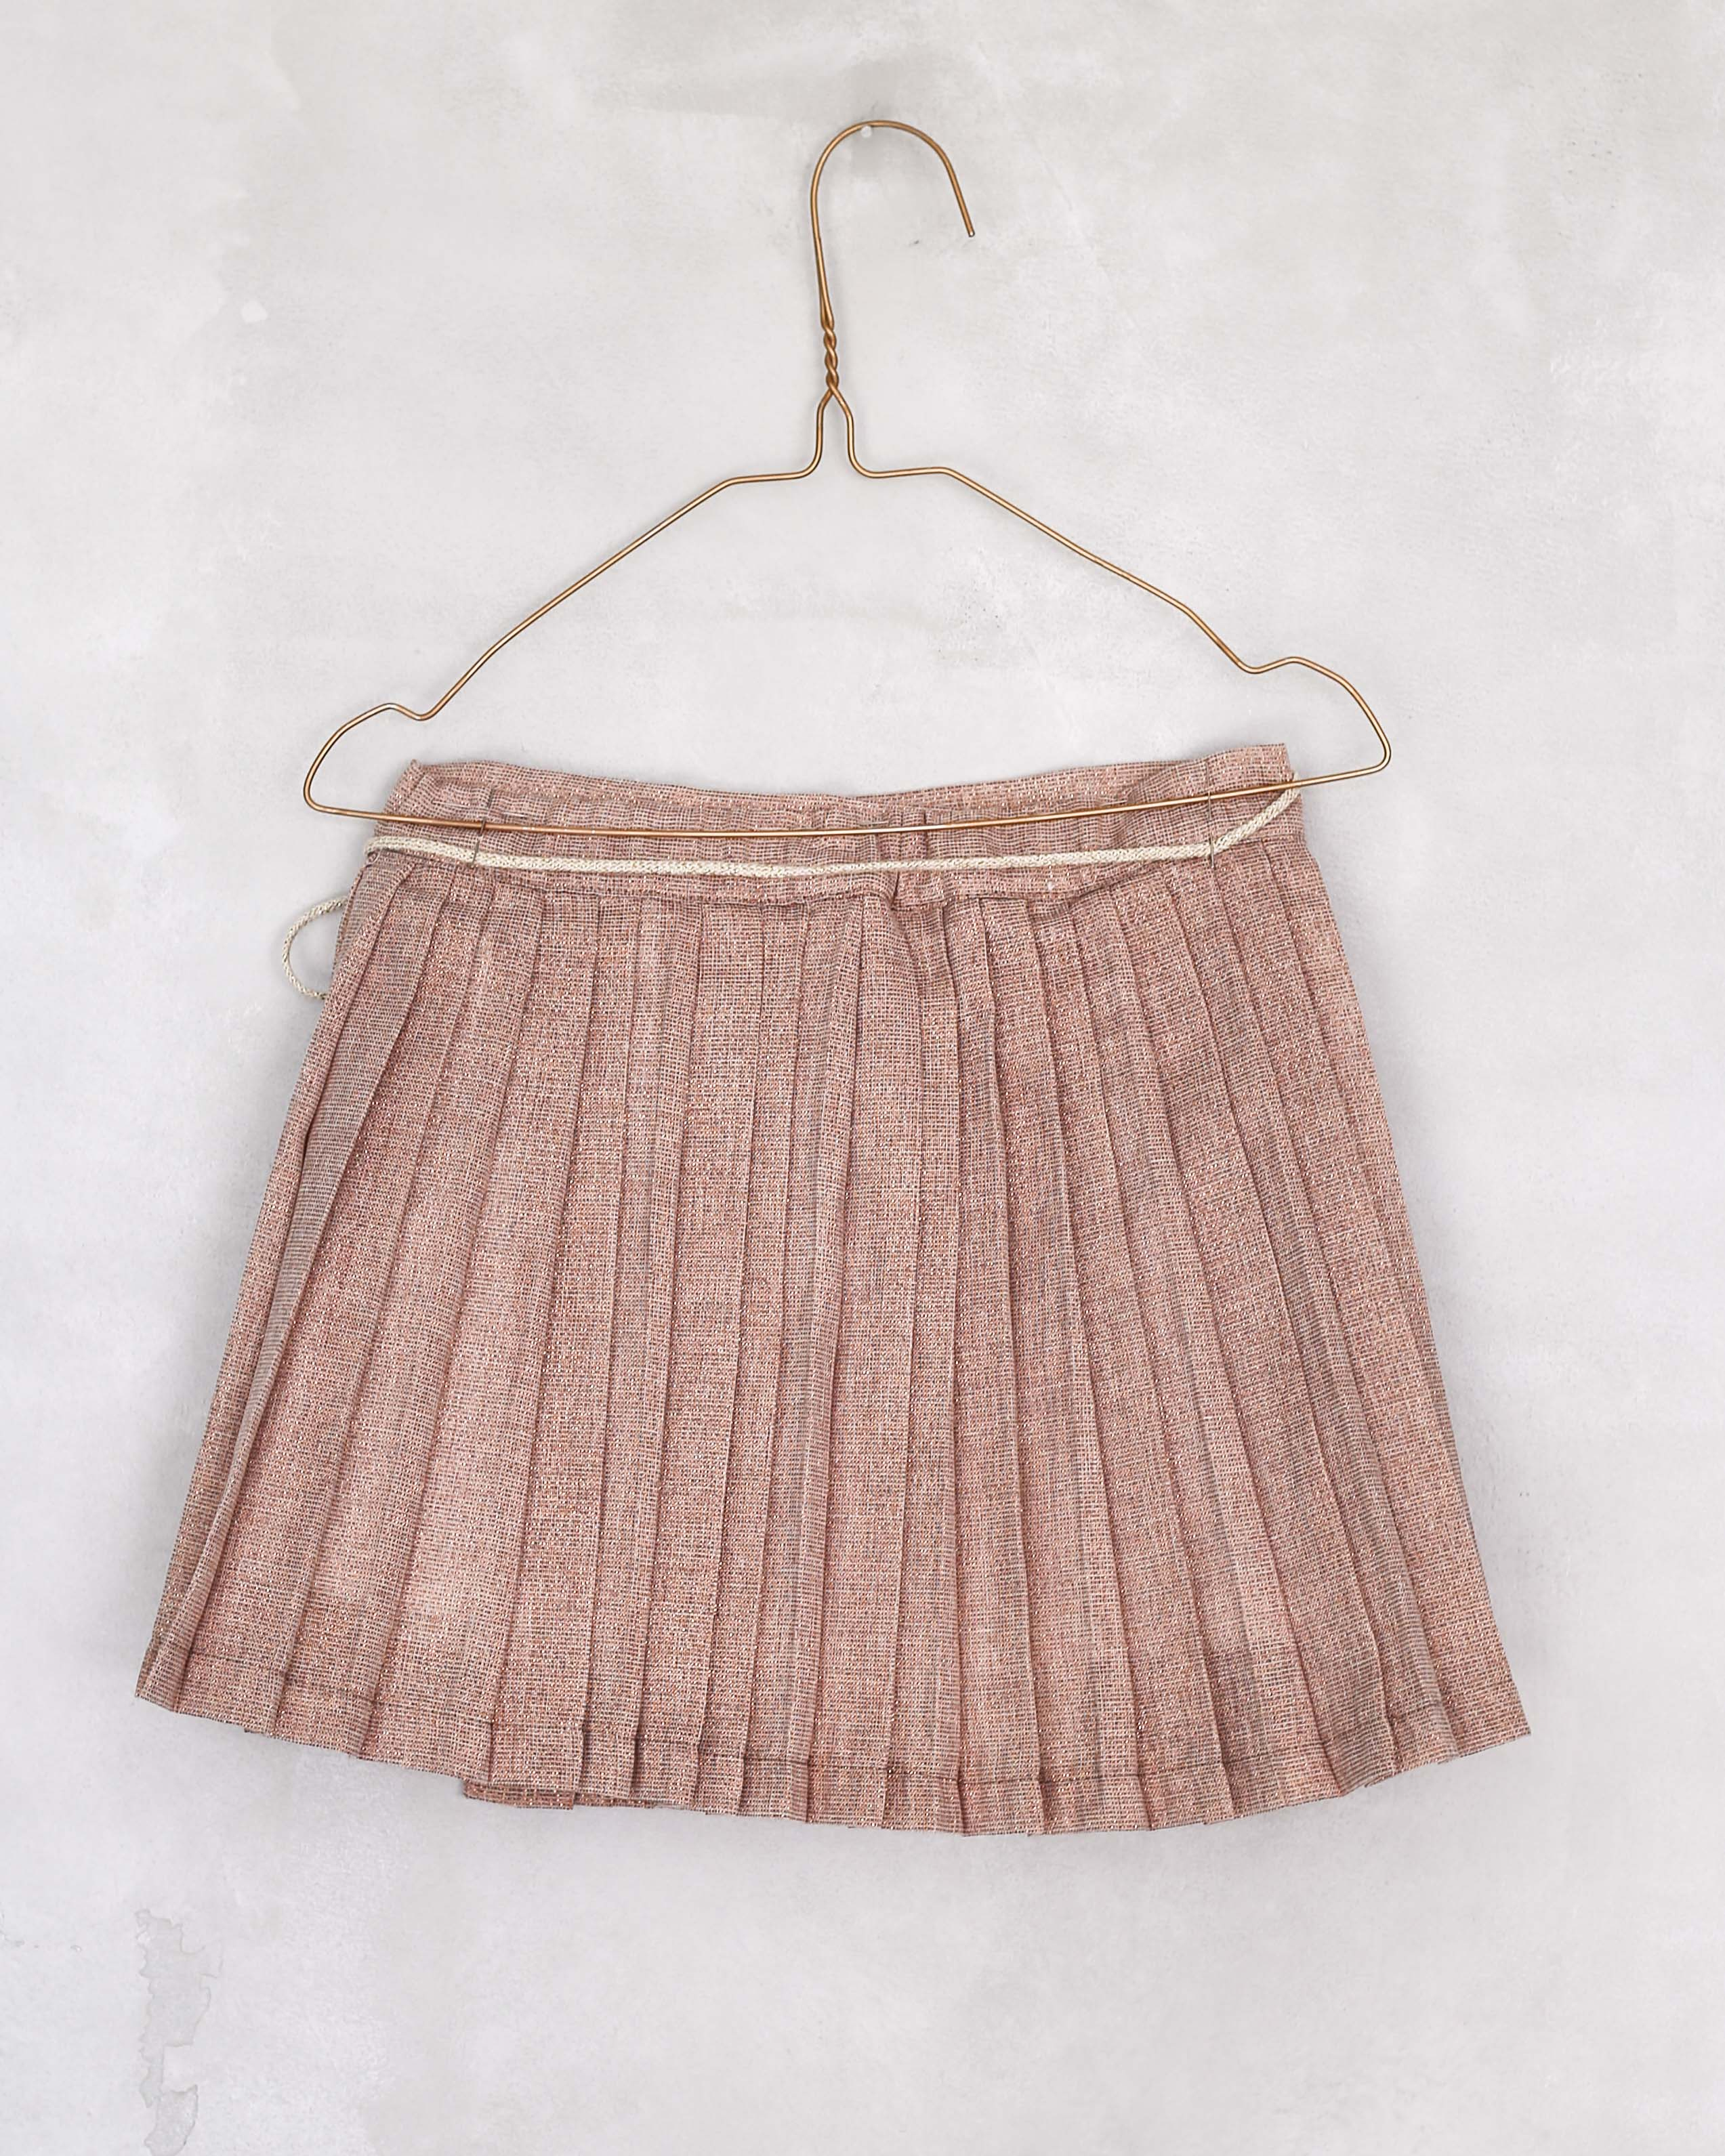 Pleated wrap skirt in Rose gold recycled lurex. Crossed on one side and tied by two lurex cords. Perfect  for special ocassion, wedding guest, flower girl, or just casual look with a tshirt.